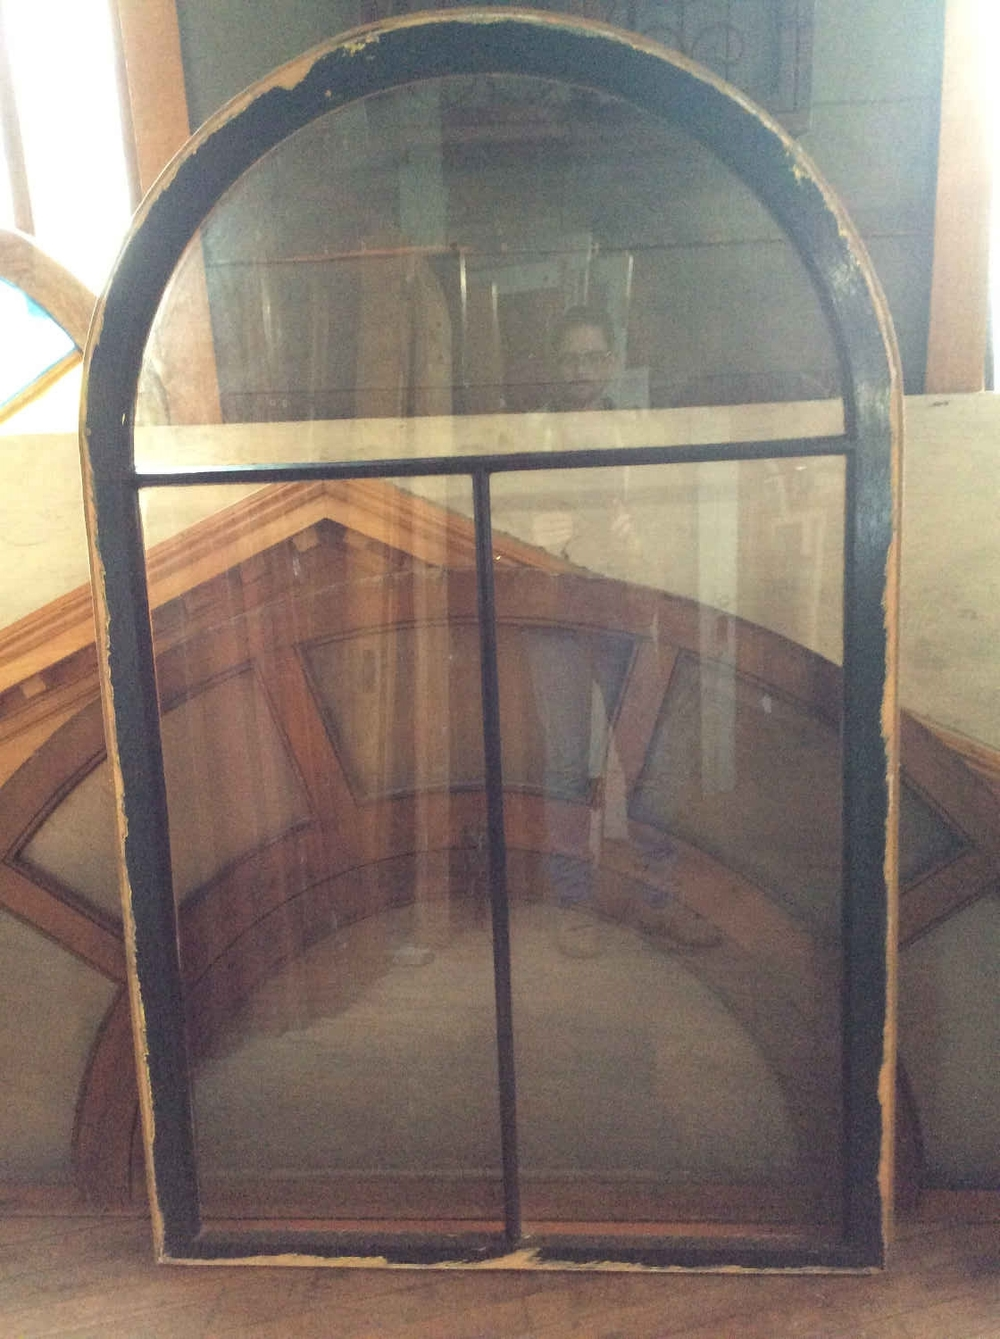 Arched Top Window with 3 Panes